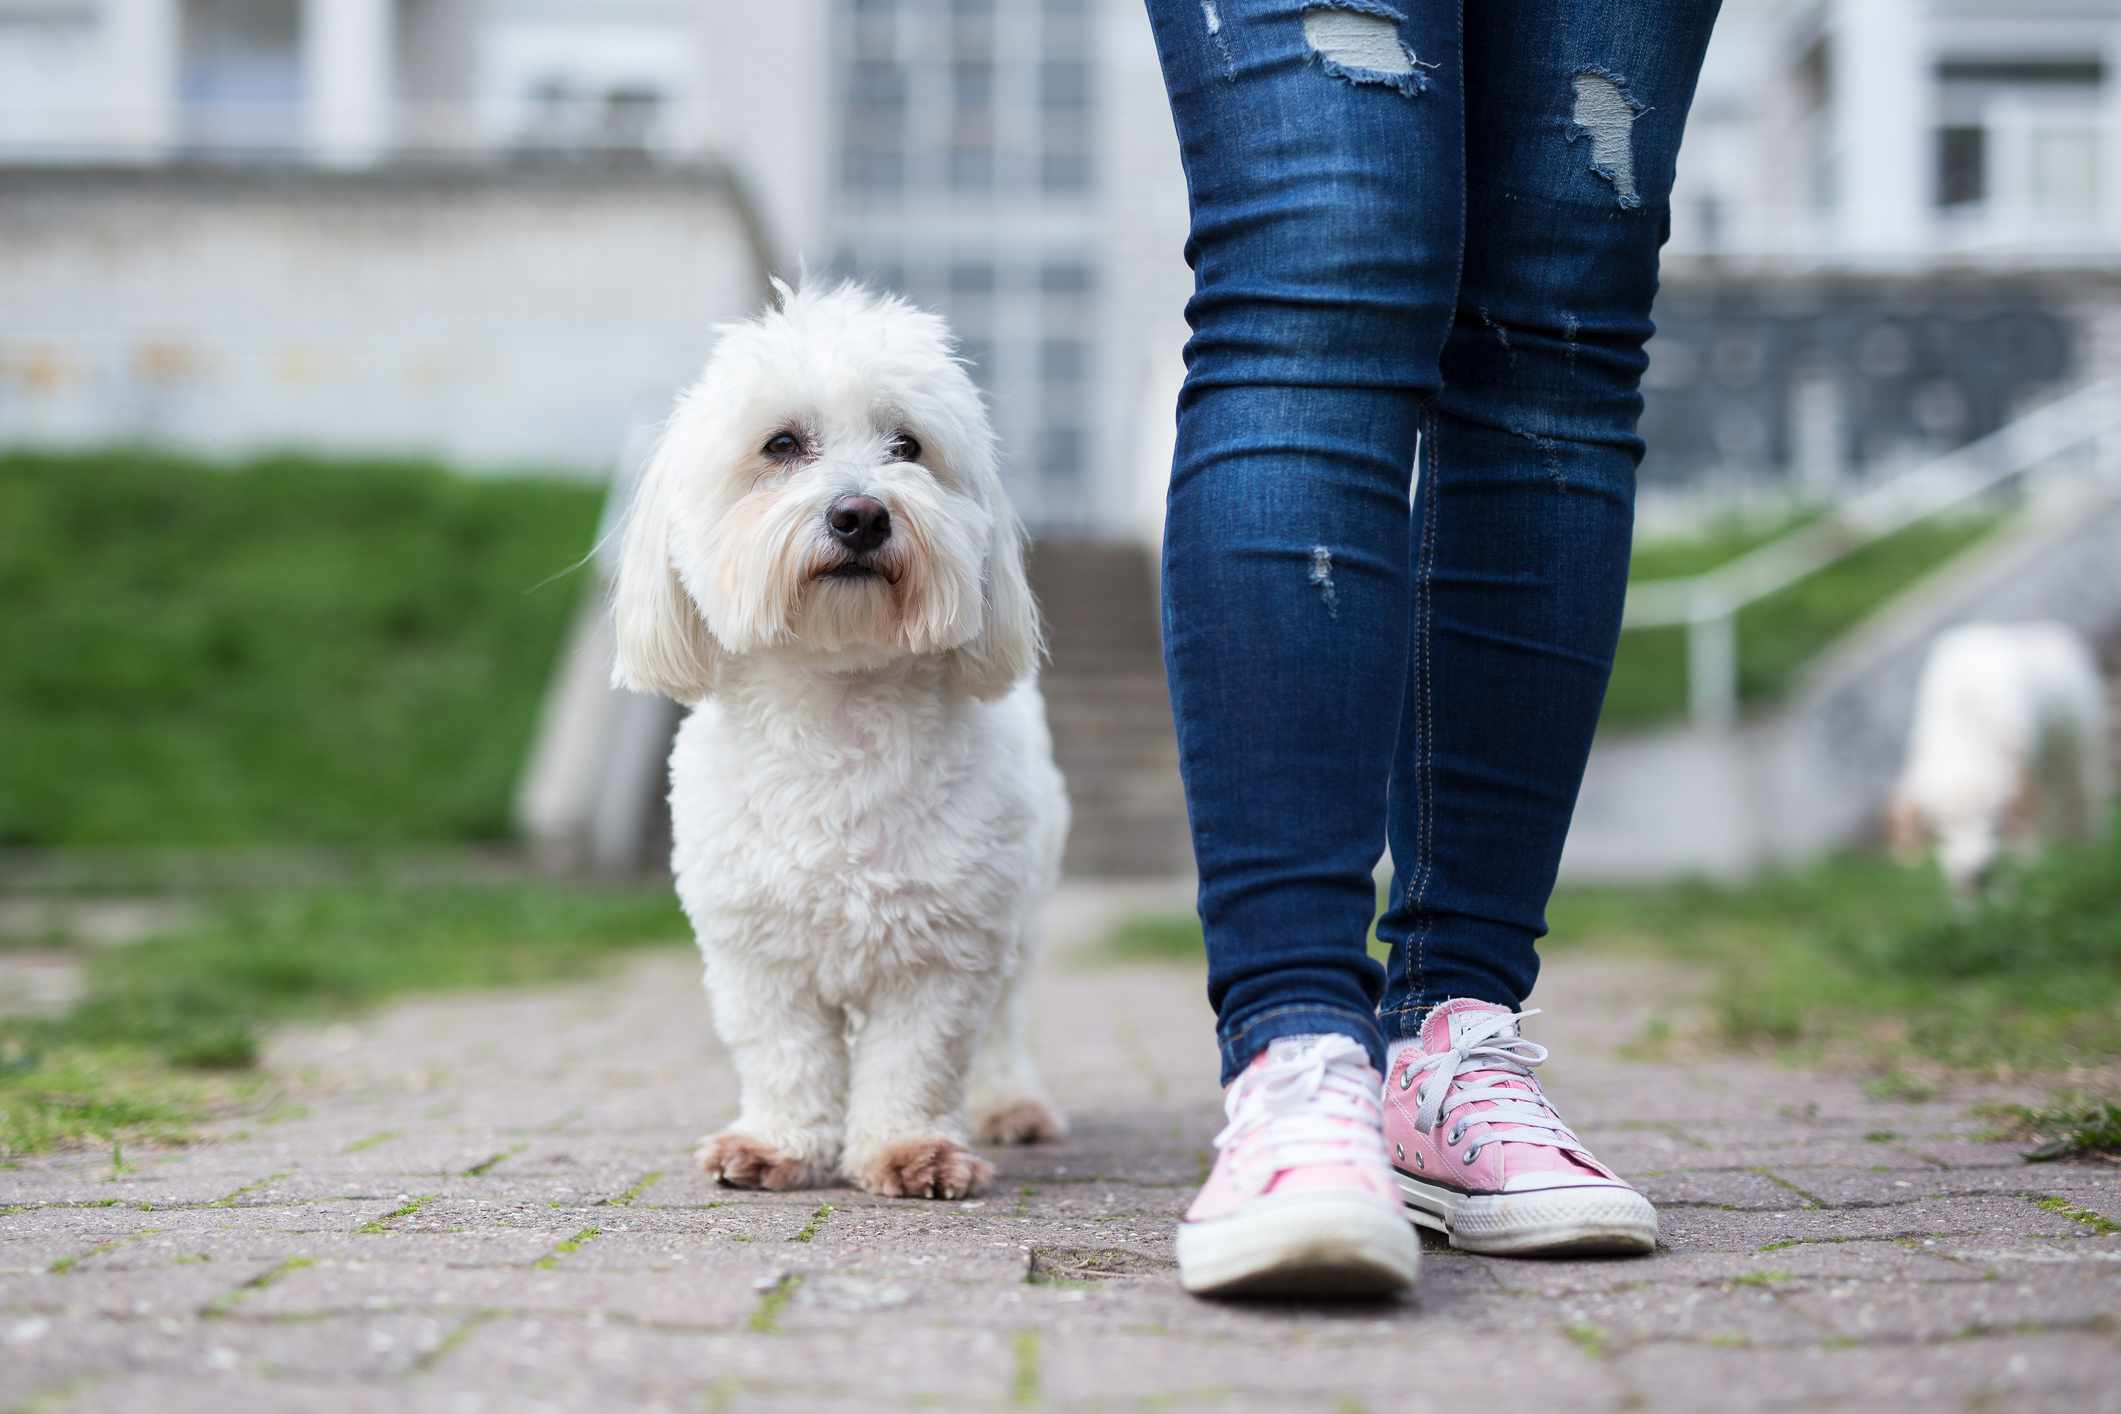 A person wearing jeans and converse walking next to a white, fluffy, small dog.